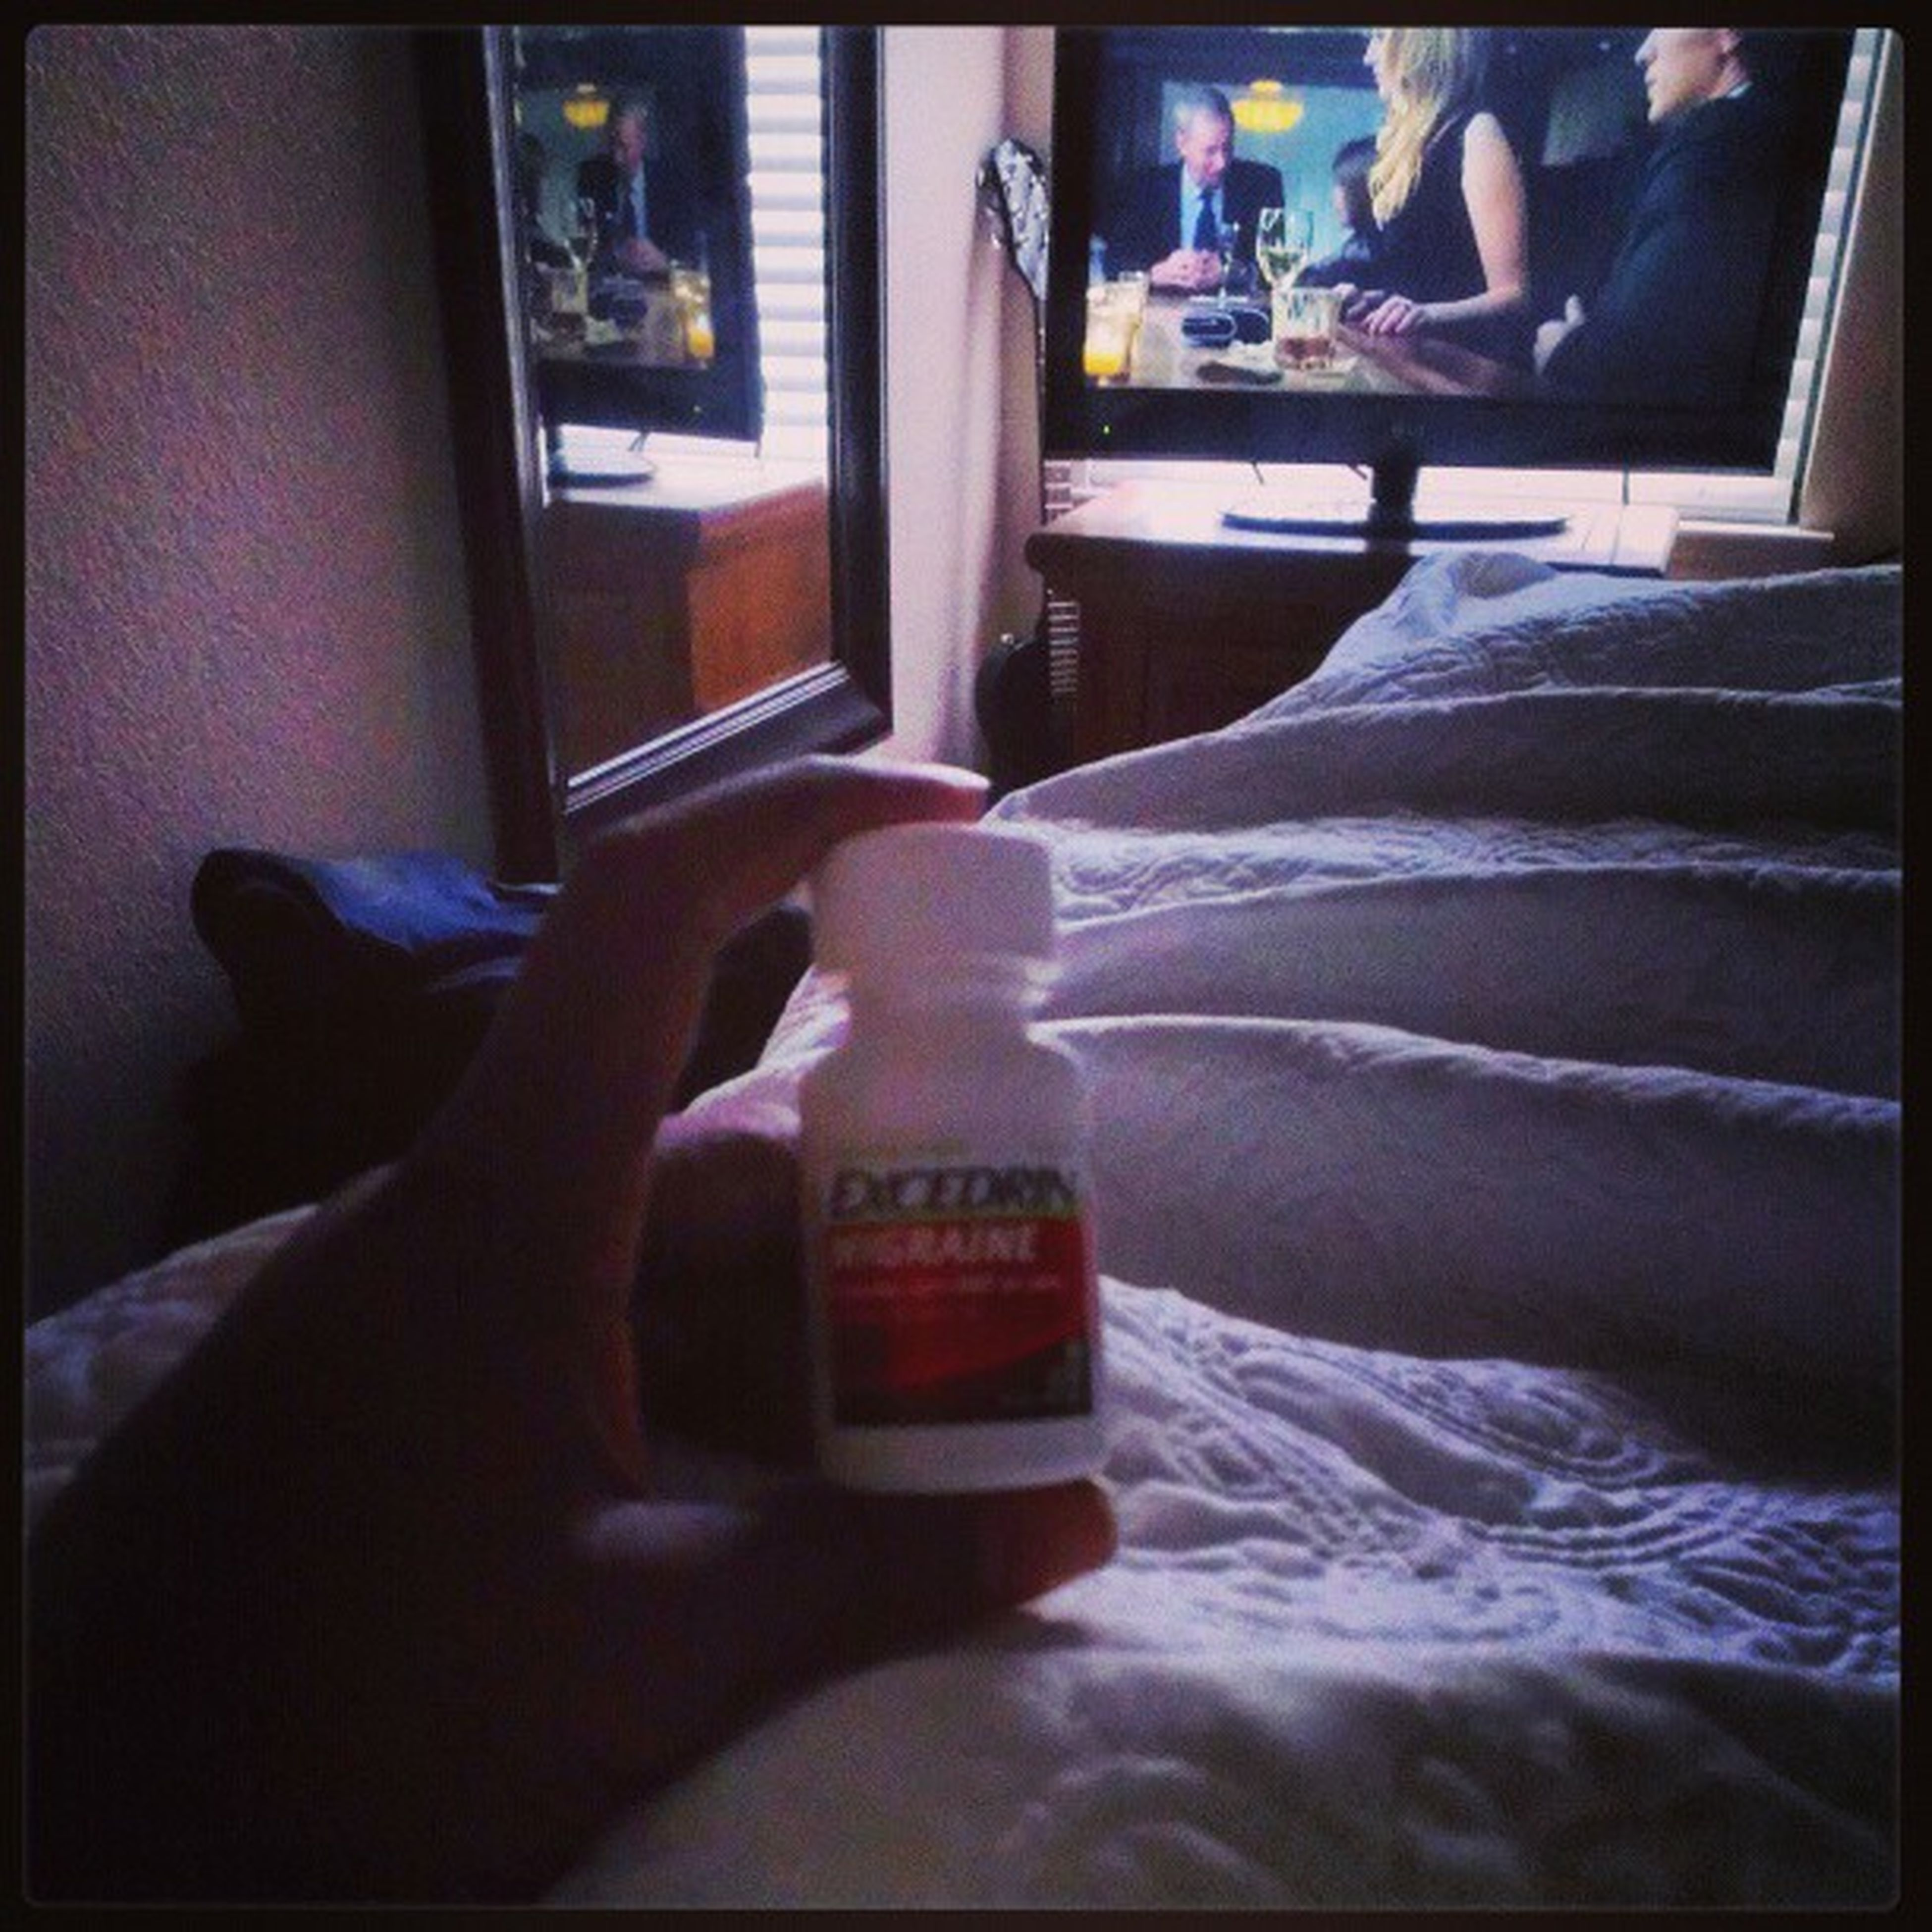 Excedrin and Houseofcards long night, and now a long day.....